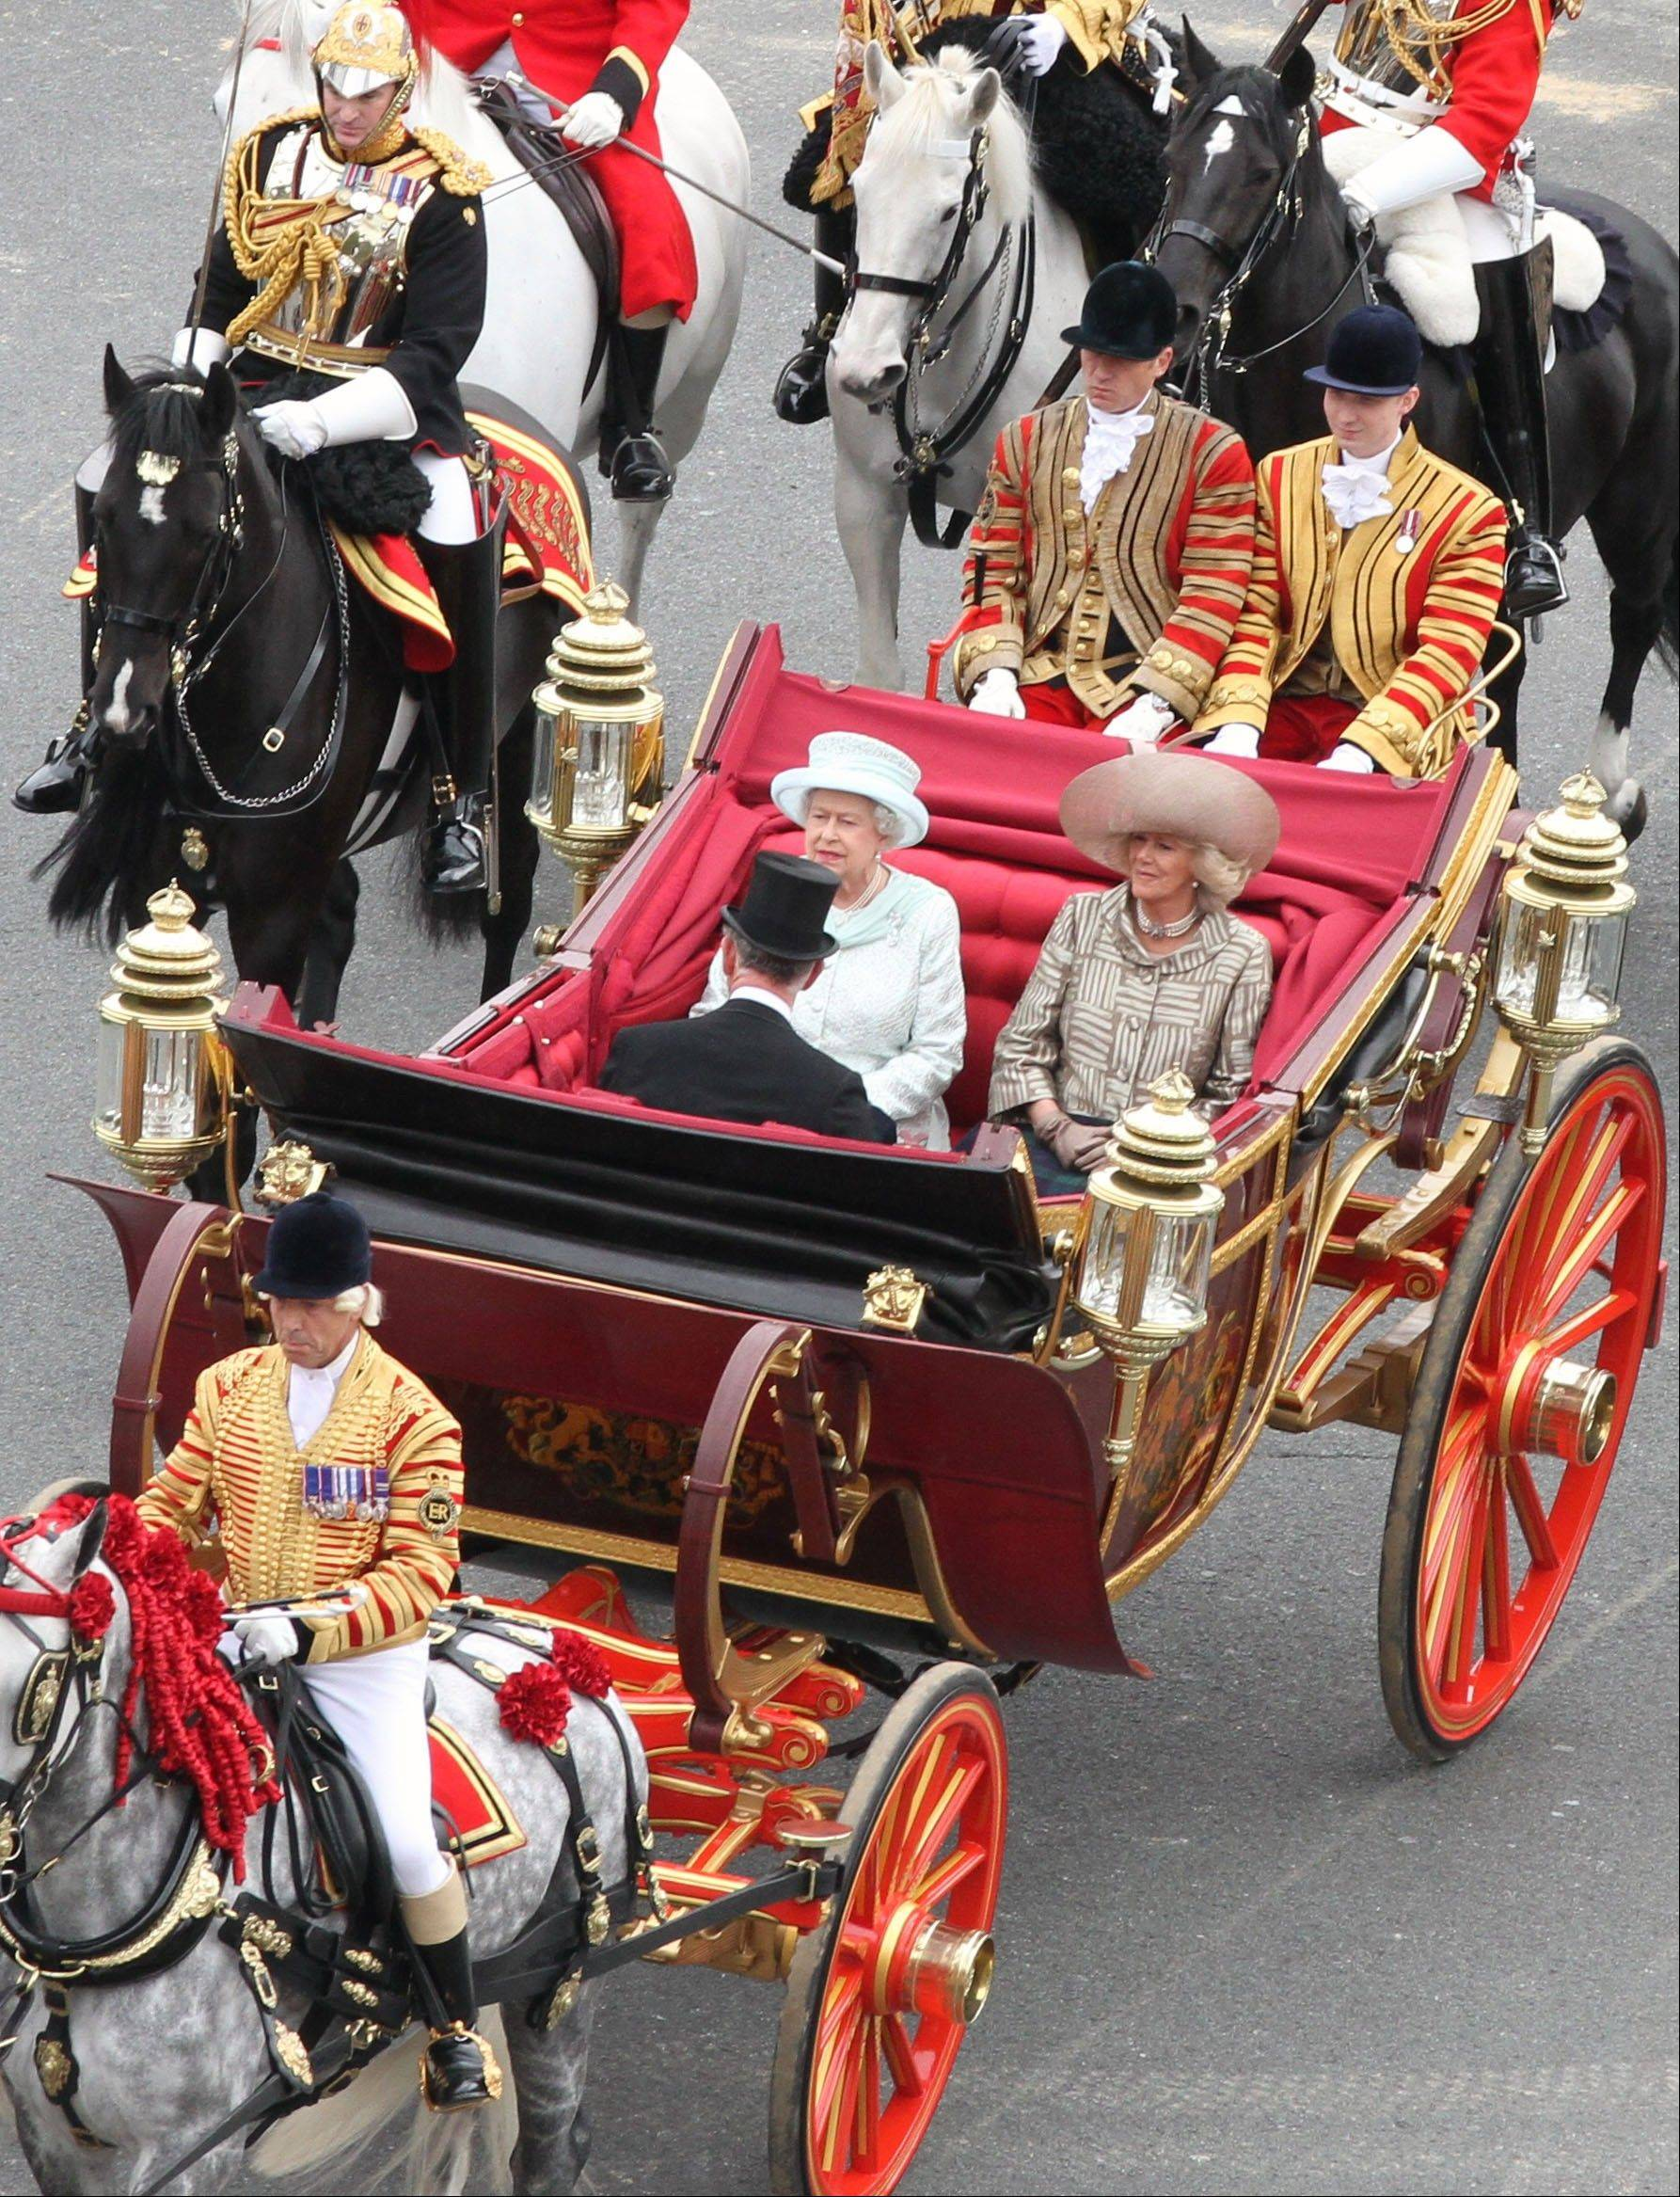 Britain's Queen Elizabeth facing camera left, with Prince Charles and Camilla Duchess of Cornwall, ride in a carriage as they head for Buckingham Palace in a carriage procession in London Tuesday June 5, 2012. The carriage procession is part of a four-day Diamond Jubilee celebration to mark the 60th anniversary of Queen Elizabeth II accession to the throne .